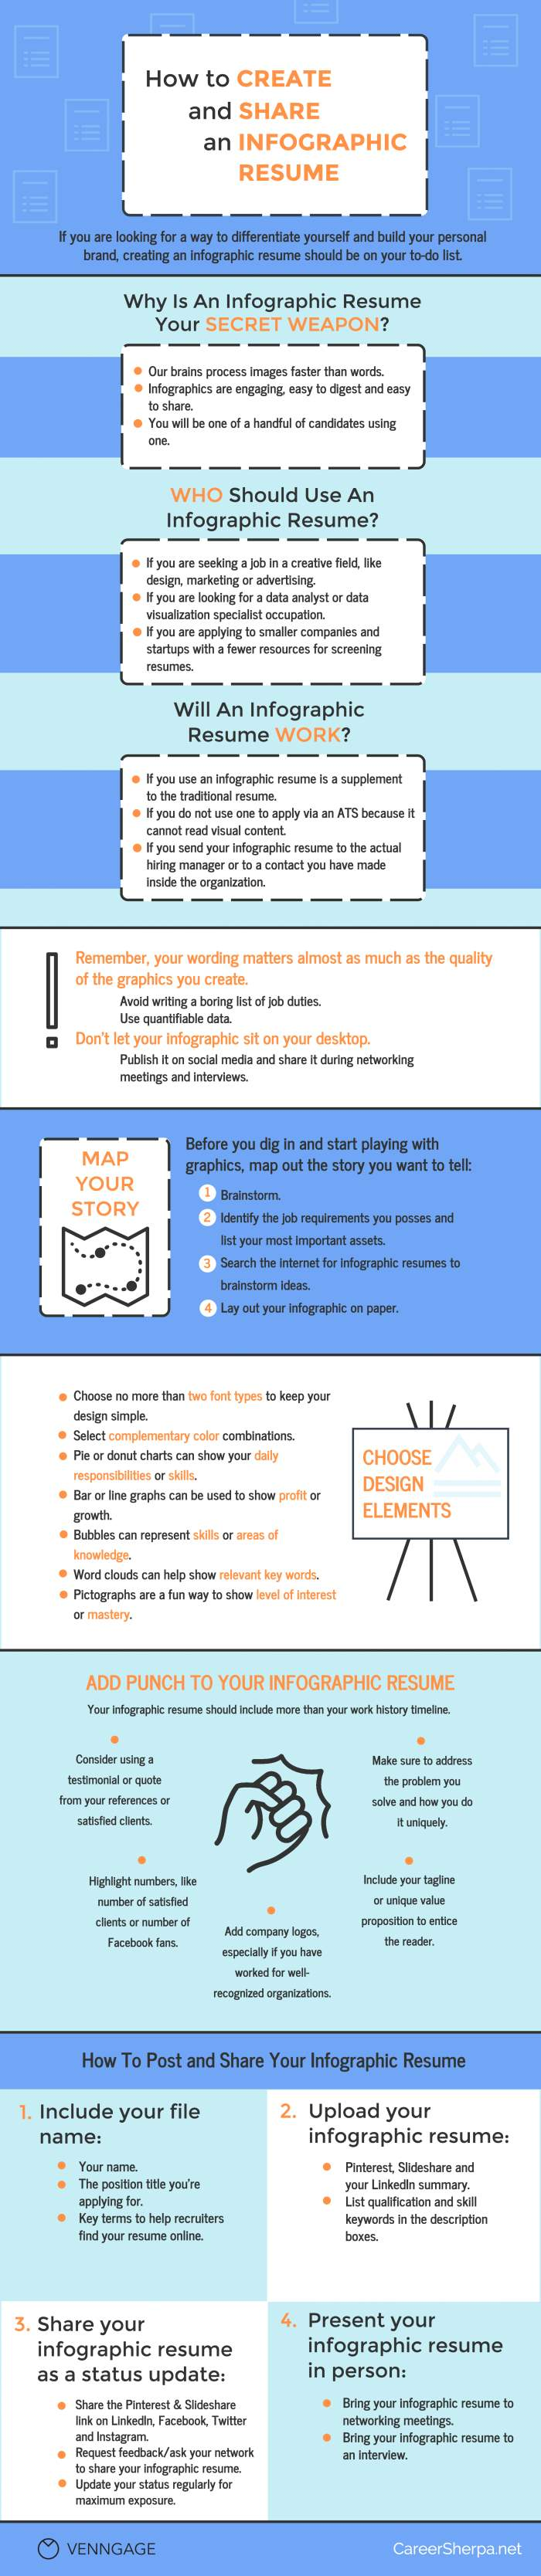 How to Create and Share Your Infographic Resume